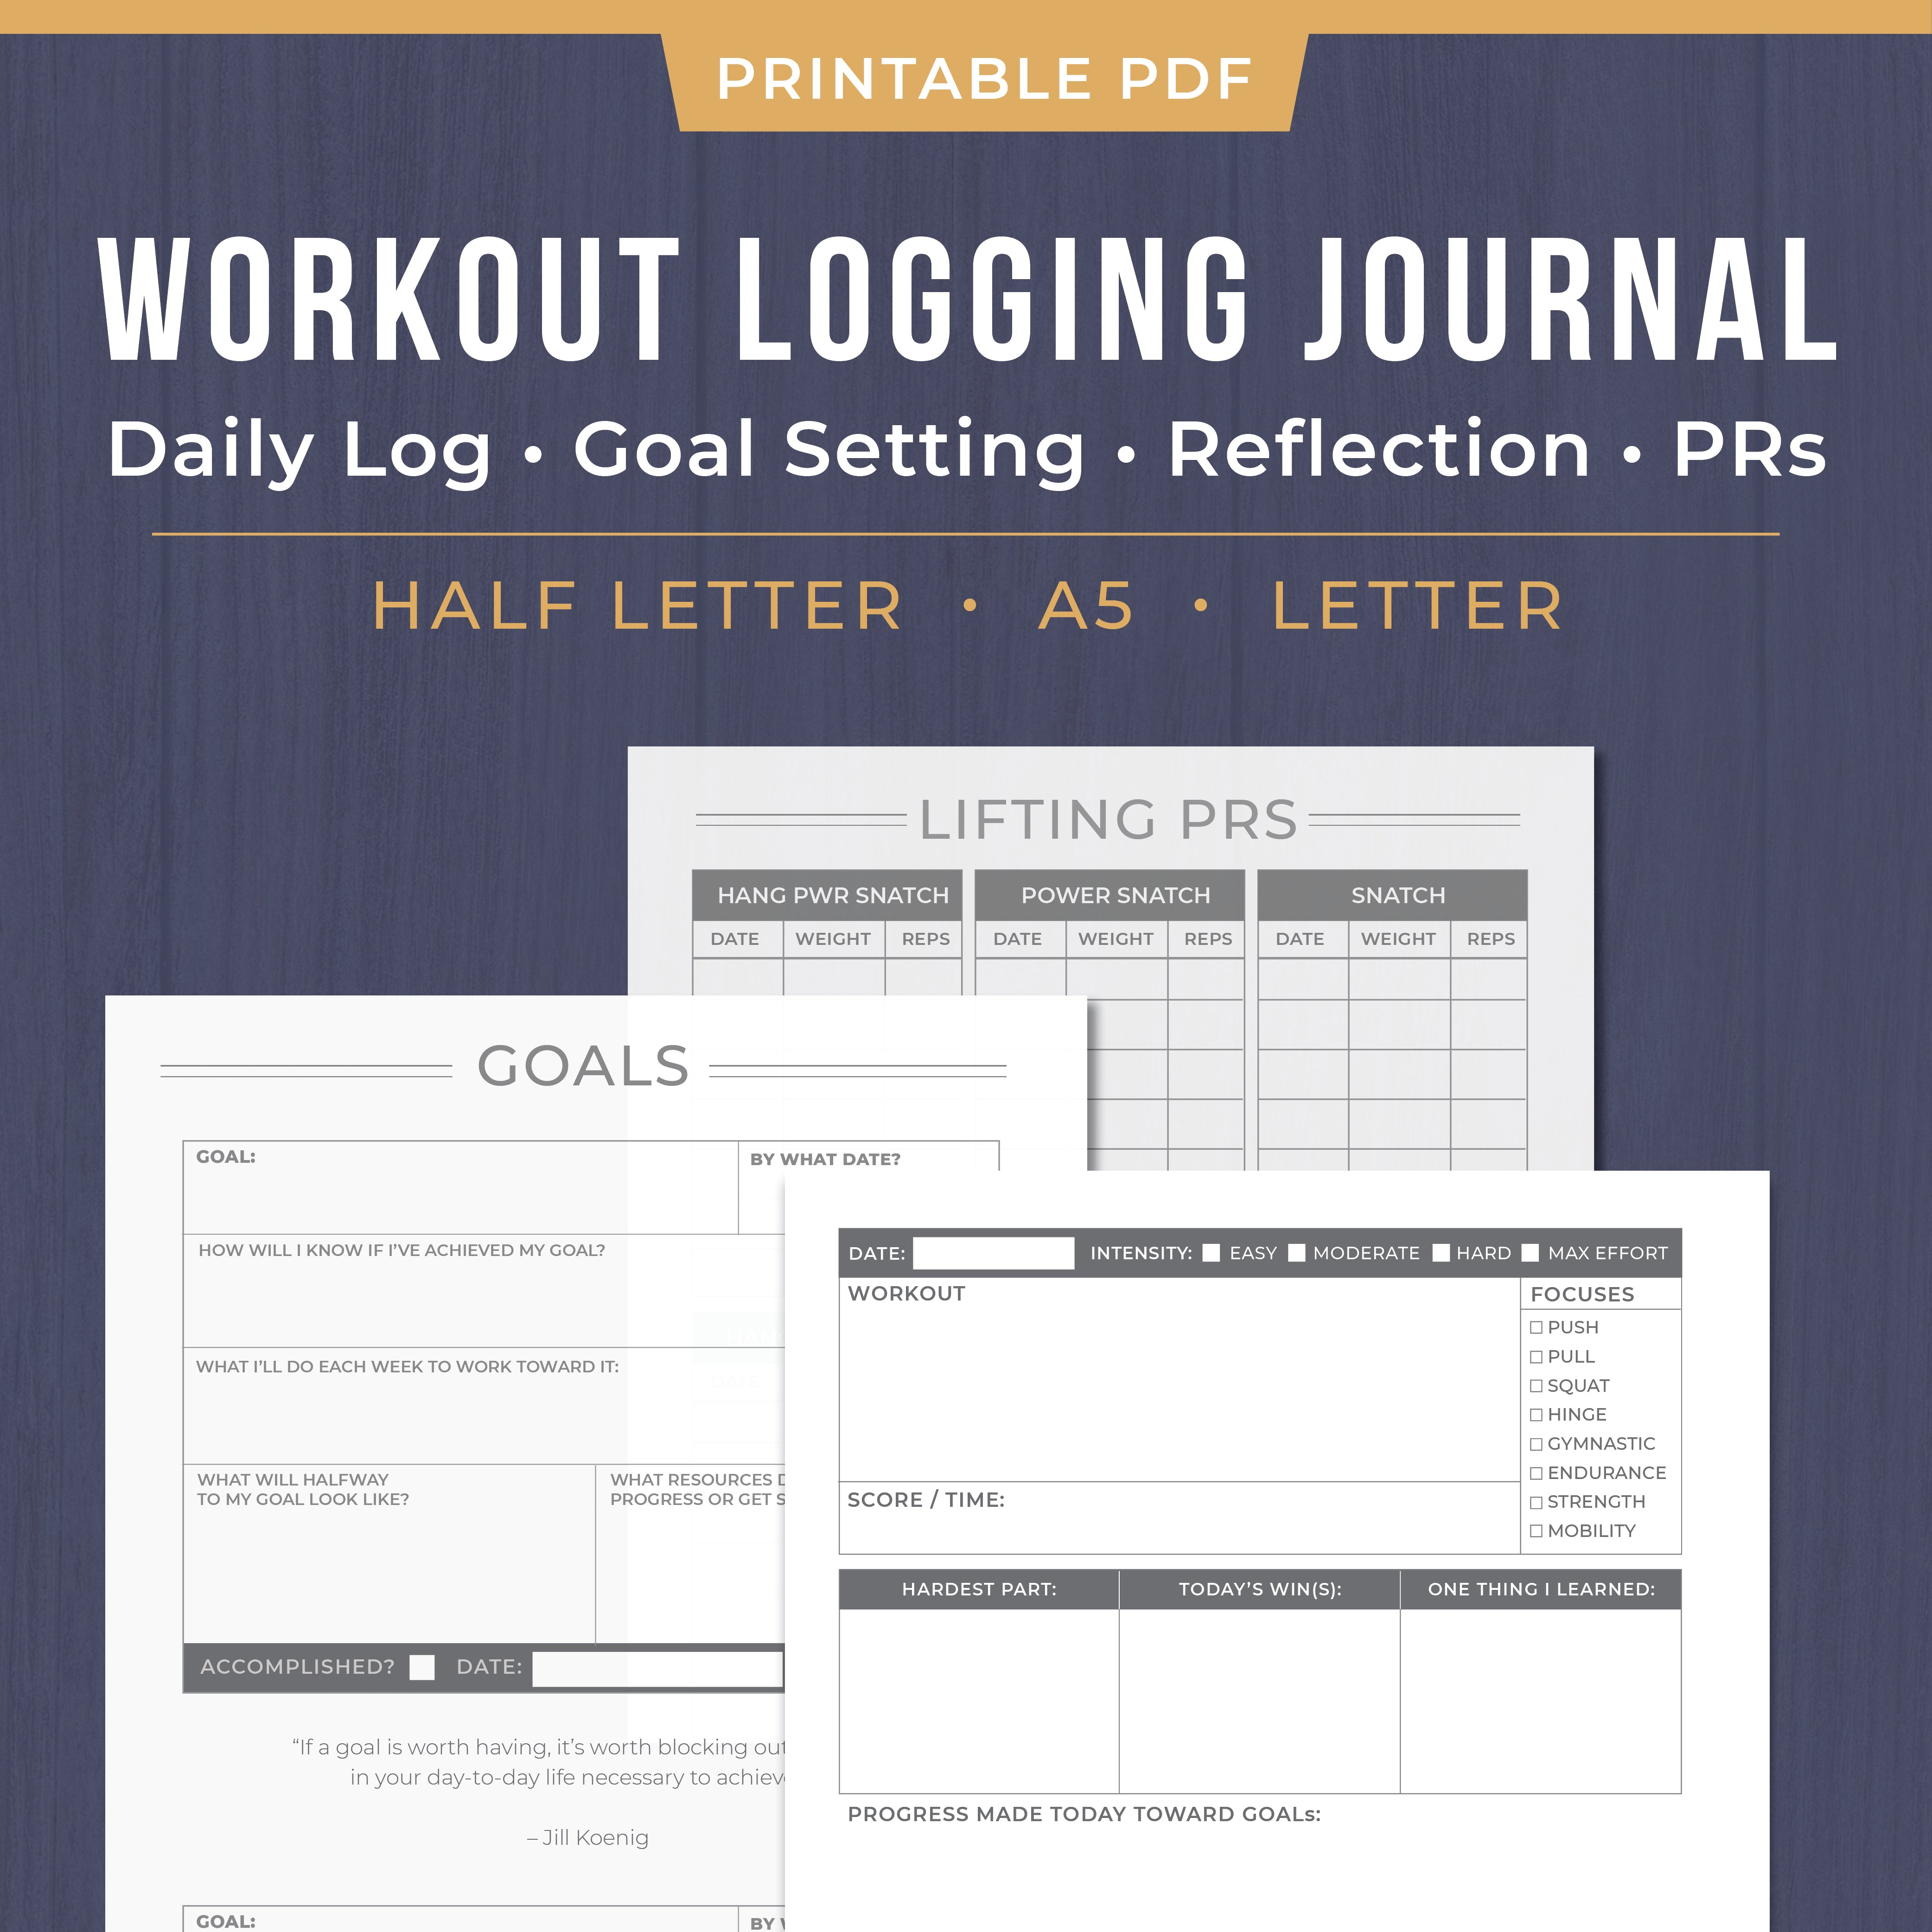 Printable CrossFit Workout Logging Journal